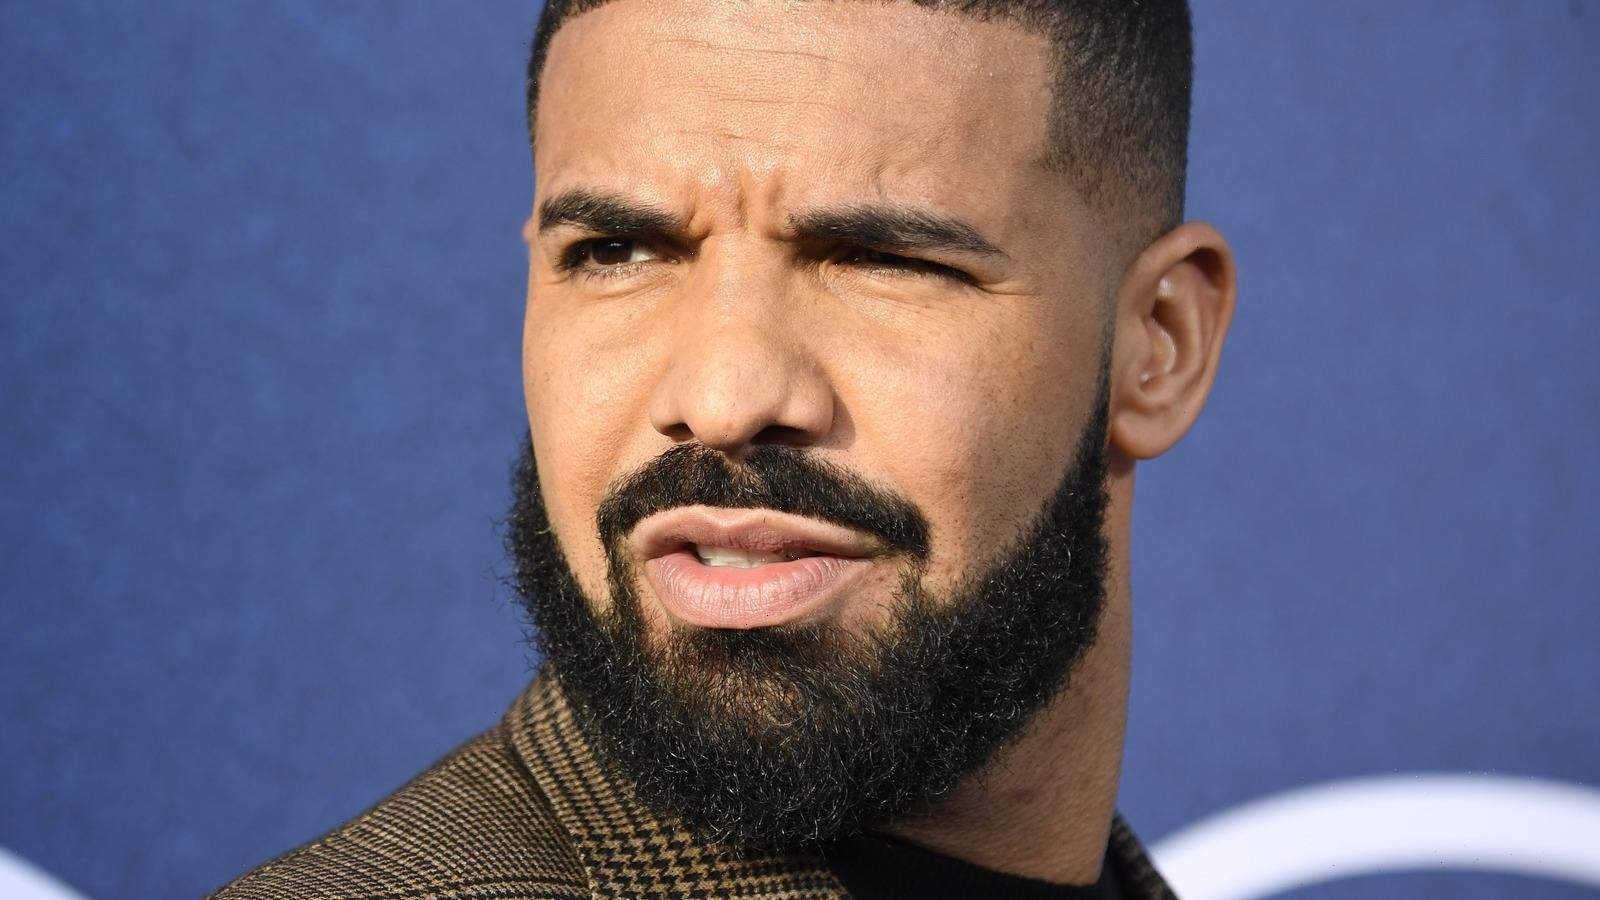 Fans Can't Stop Talking About Drake's $400,000 Mattress